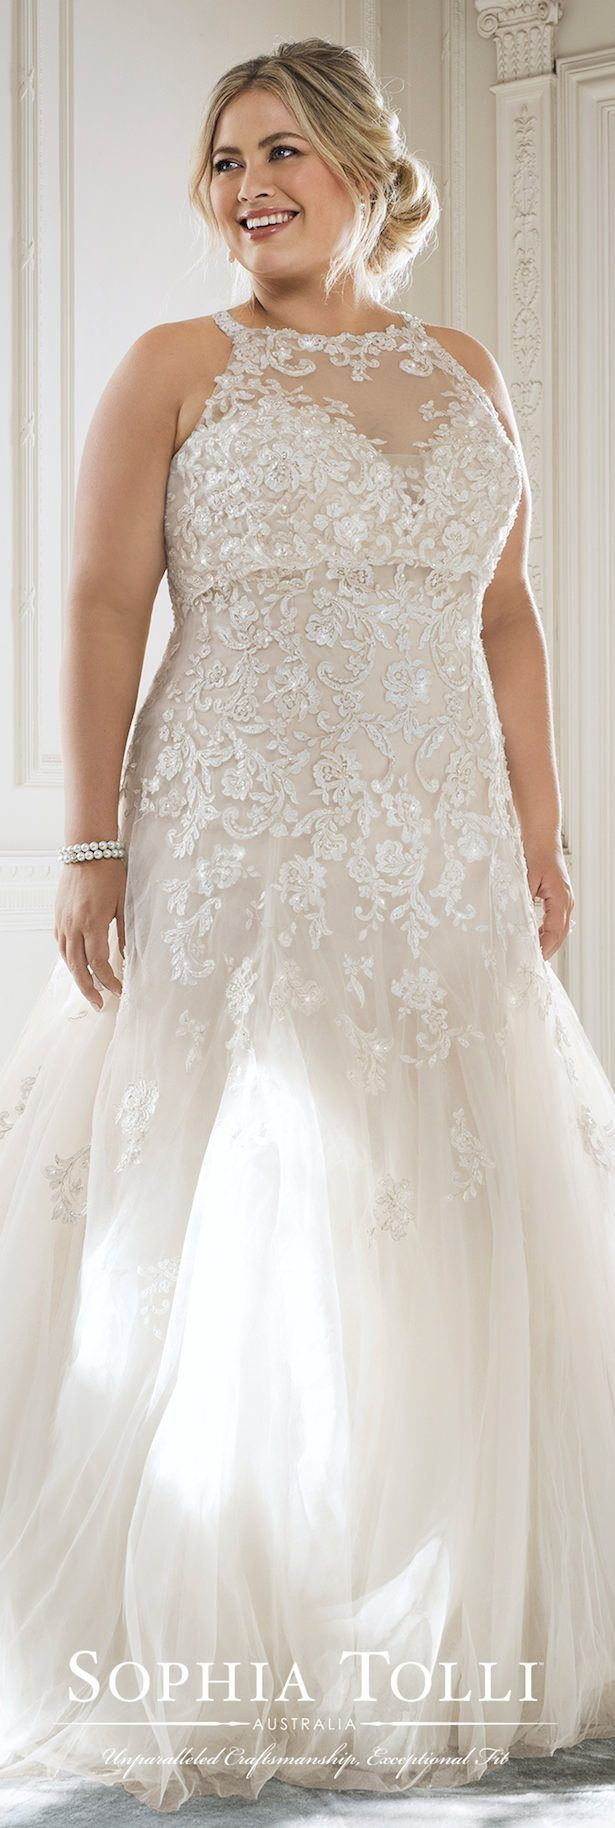 Plus Size Perfection from Sophia Tolli | Vestidos novia, Tu boda y ...